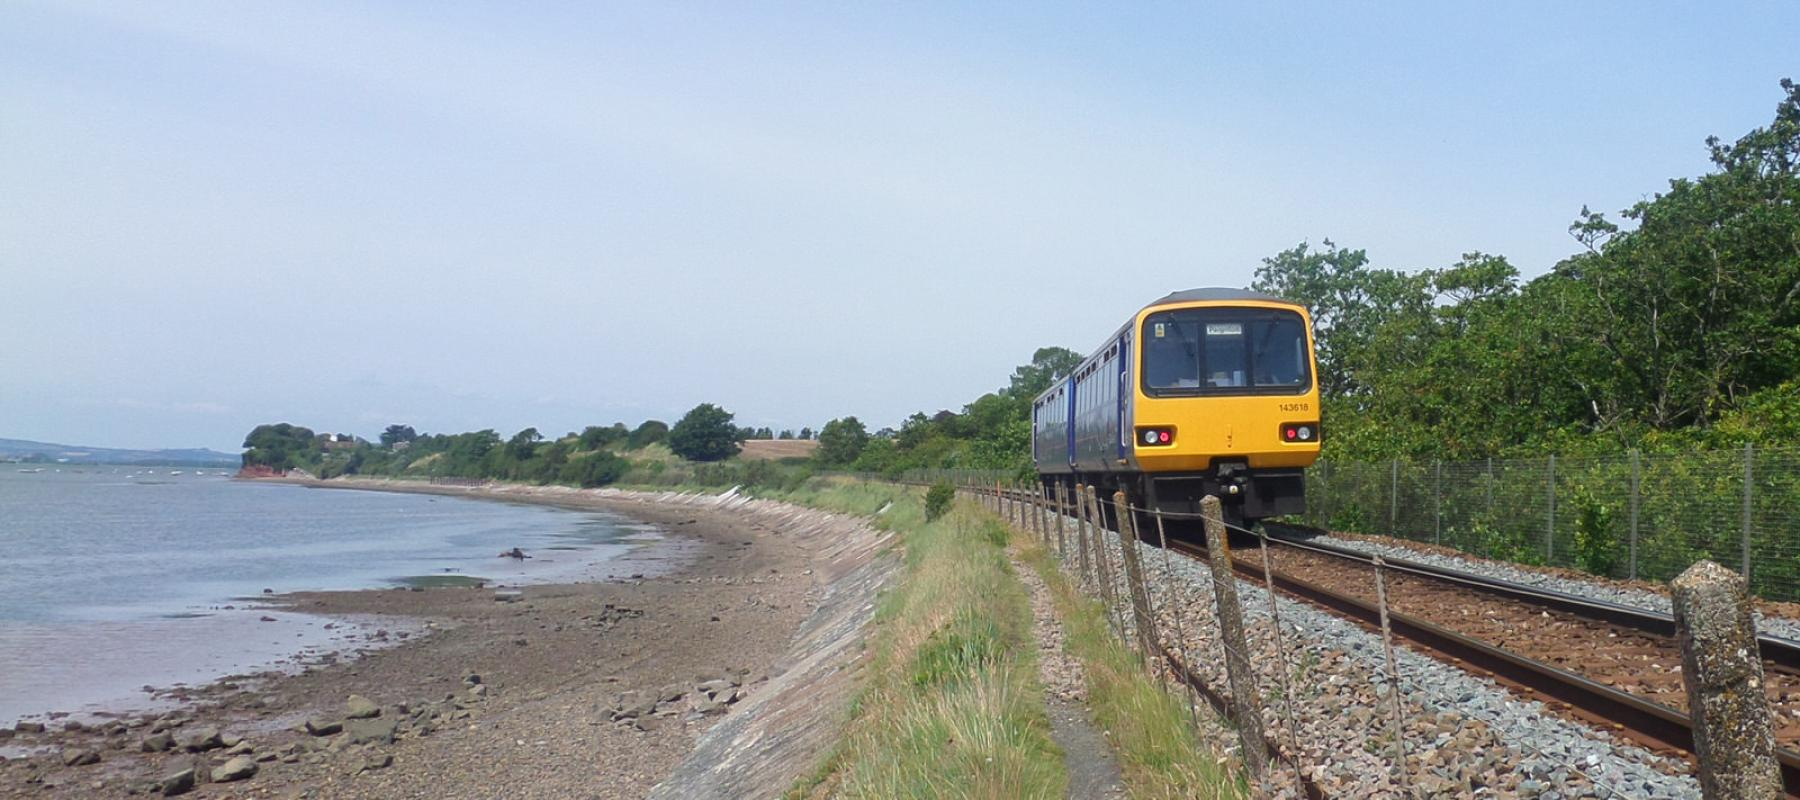 The Avocet Line between Exeter and Exmouth